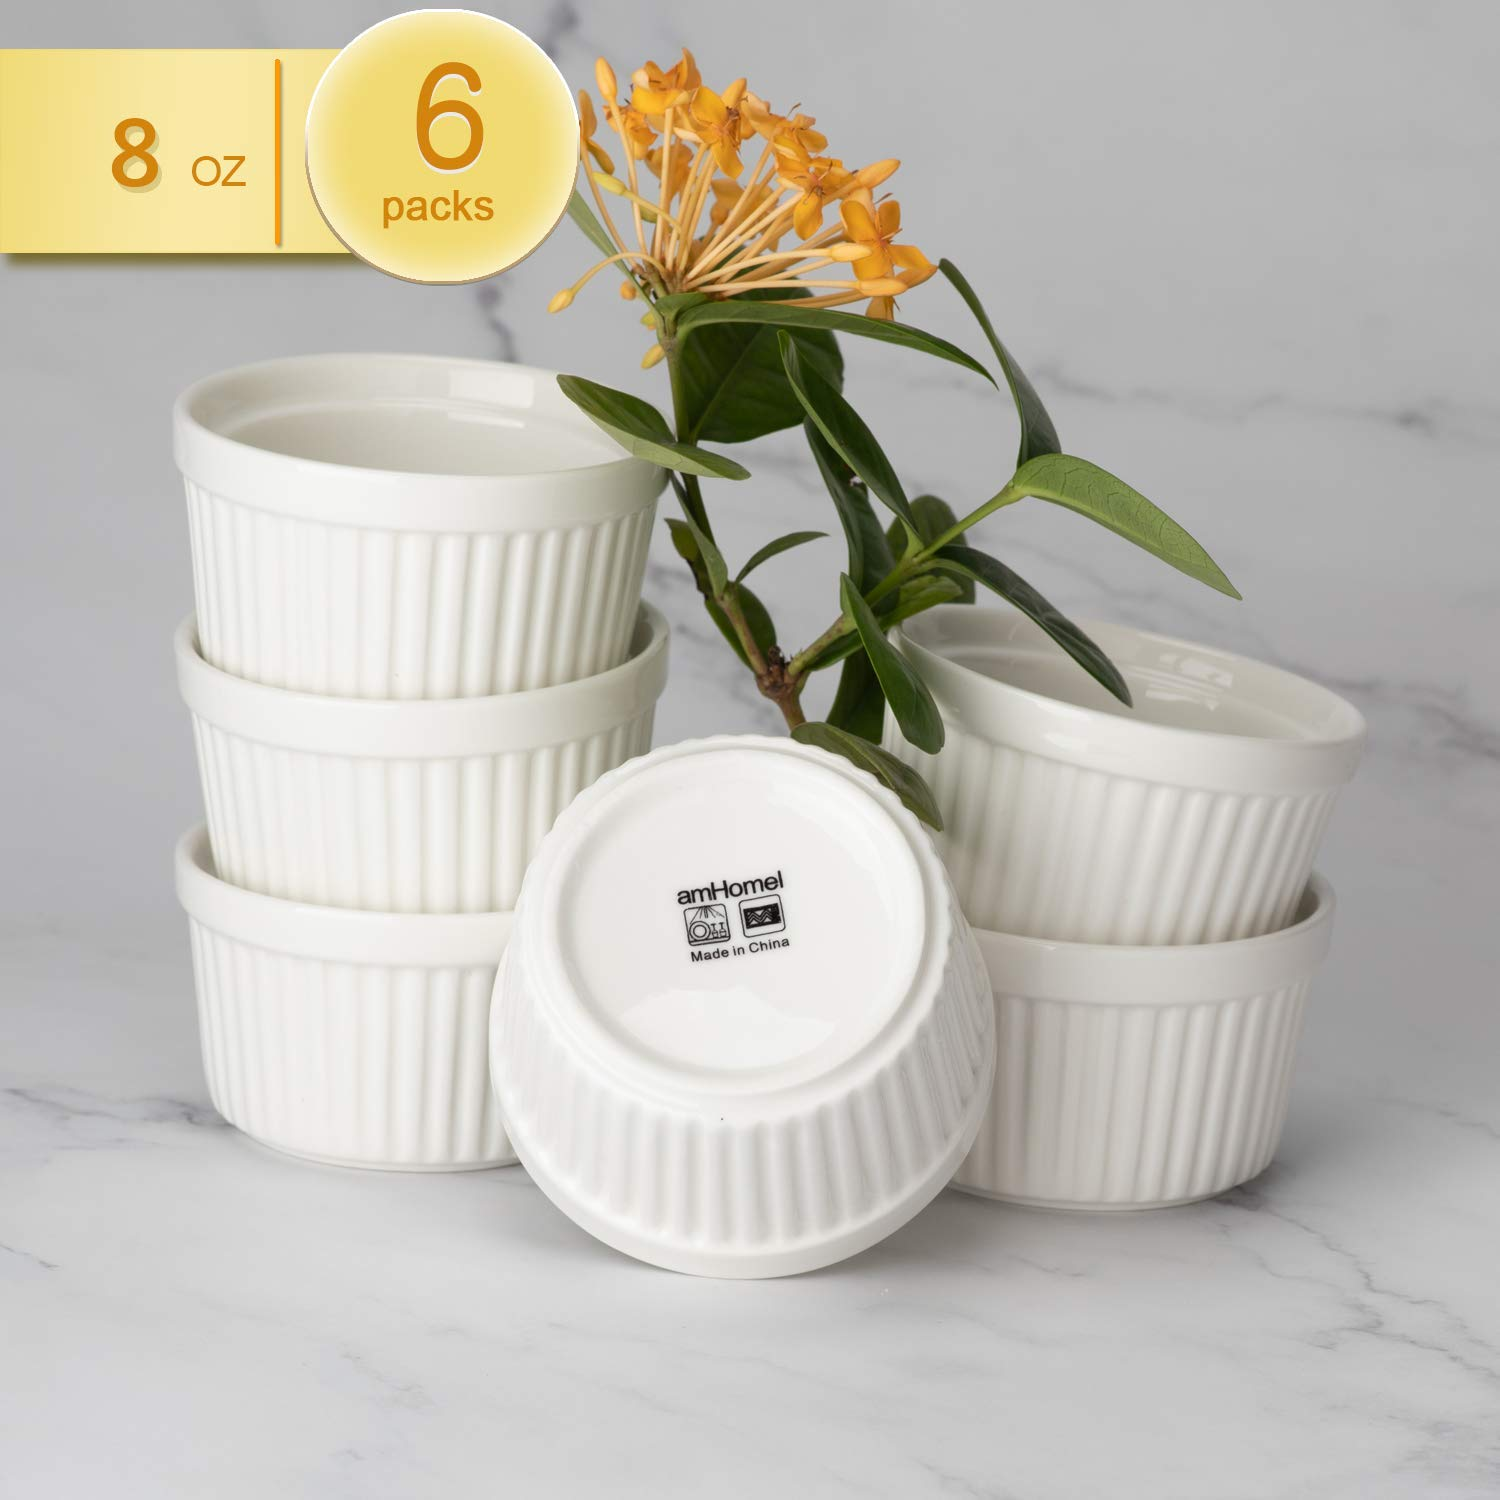 amHomel Porcelain Souffle Dishes by amHomel